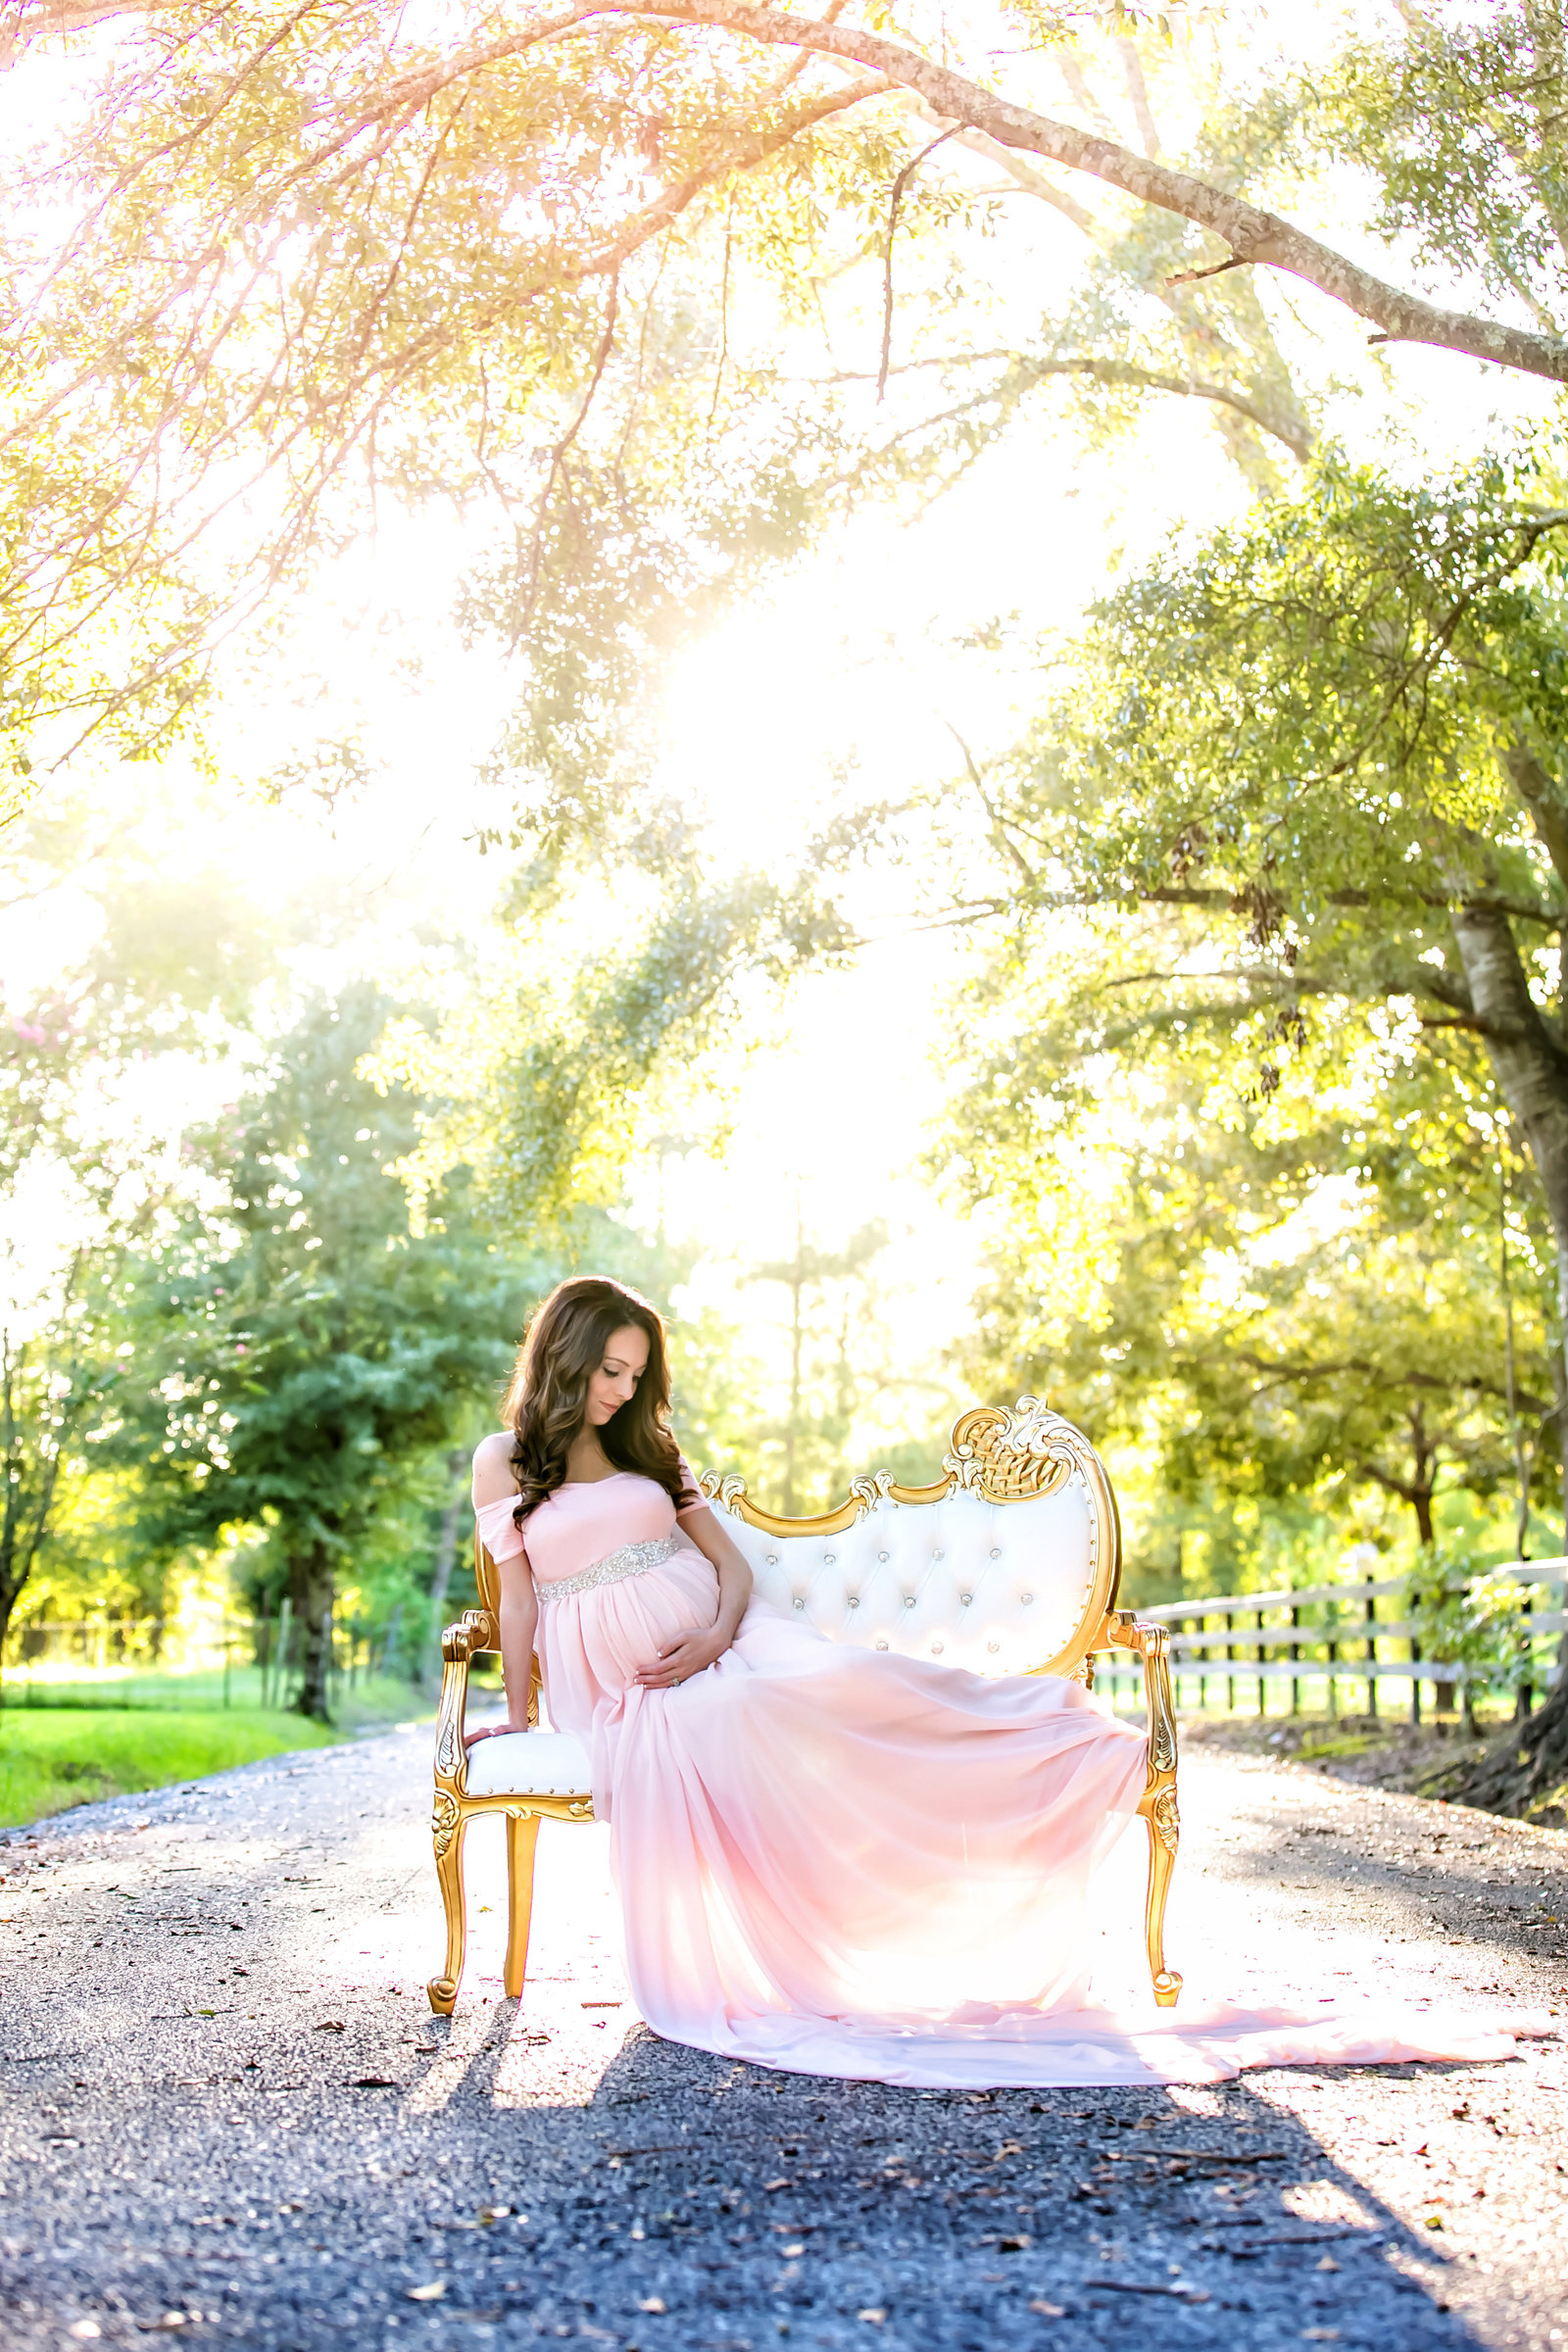 Maternity Gowns for Pictures